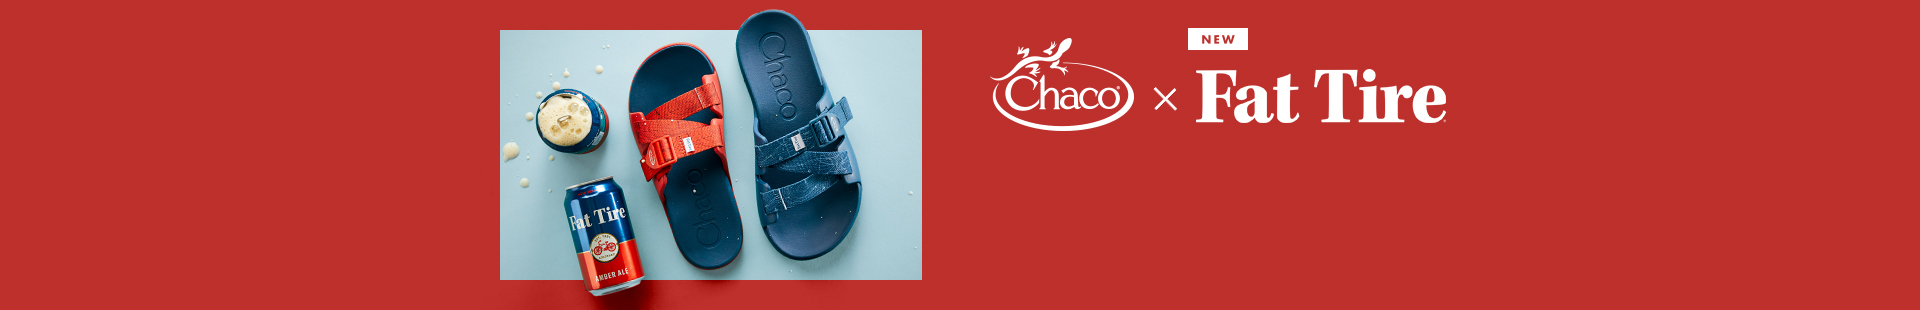 New, Chaco x Fat Tire.